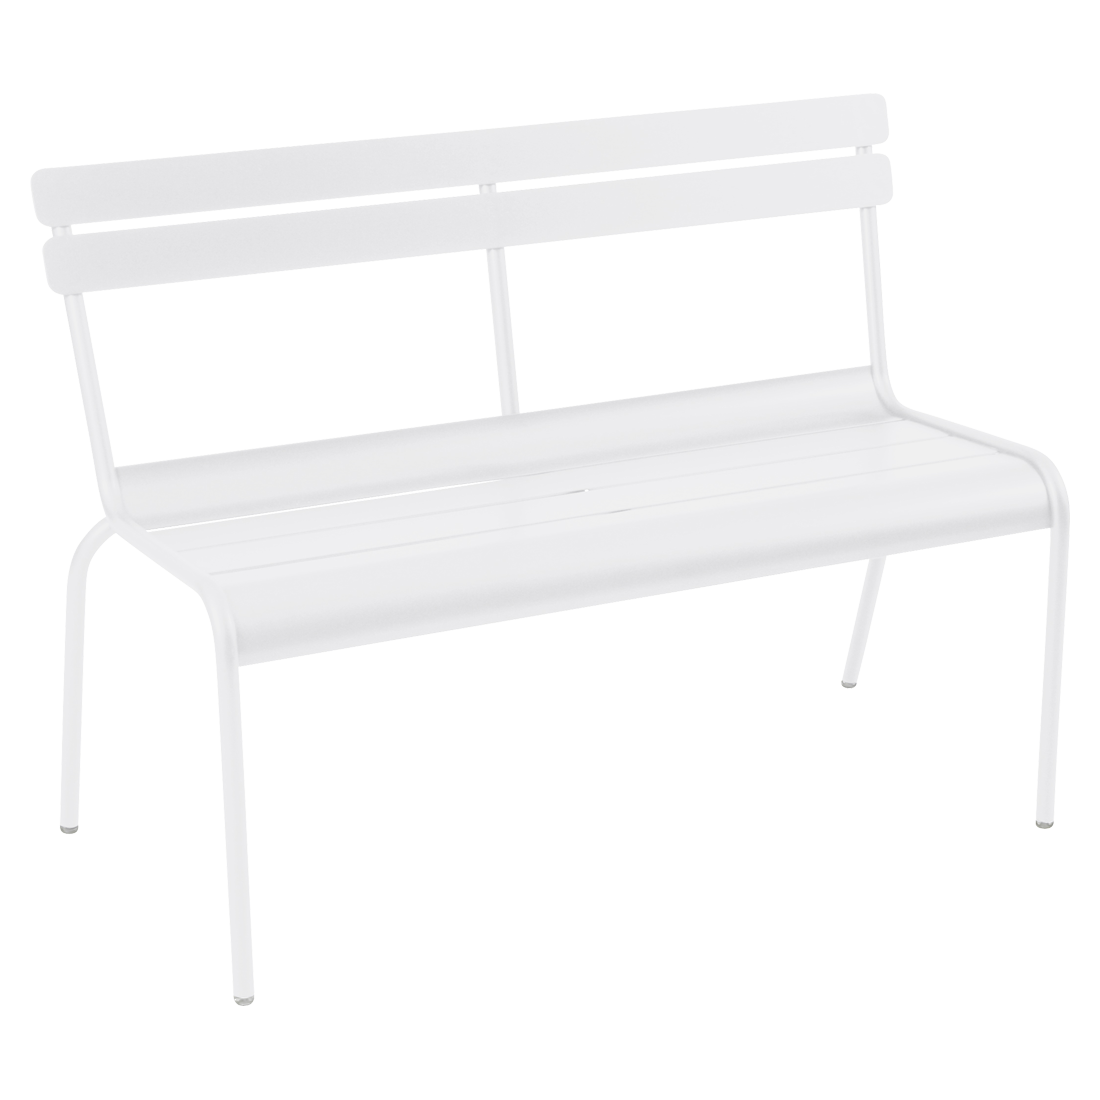 banc avec dossier luxembourg de fermob blanc coton. Black Bedroom Furniture Sets. Home Design Ideas